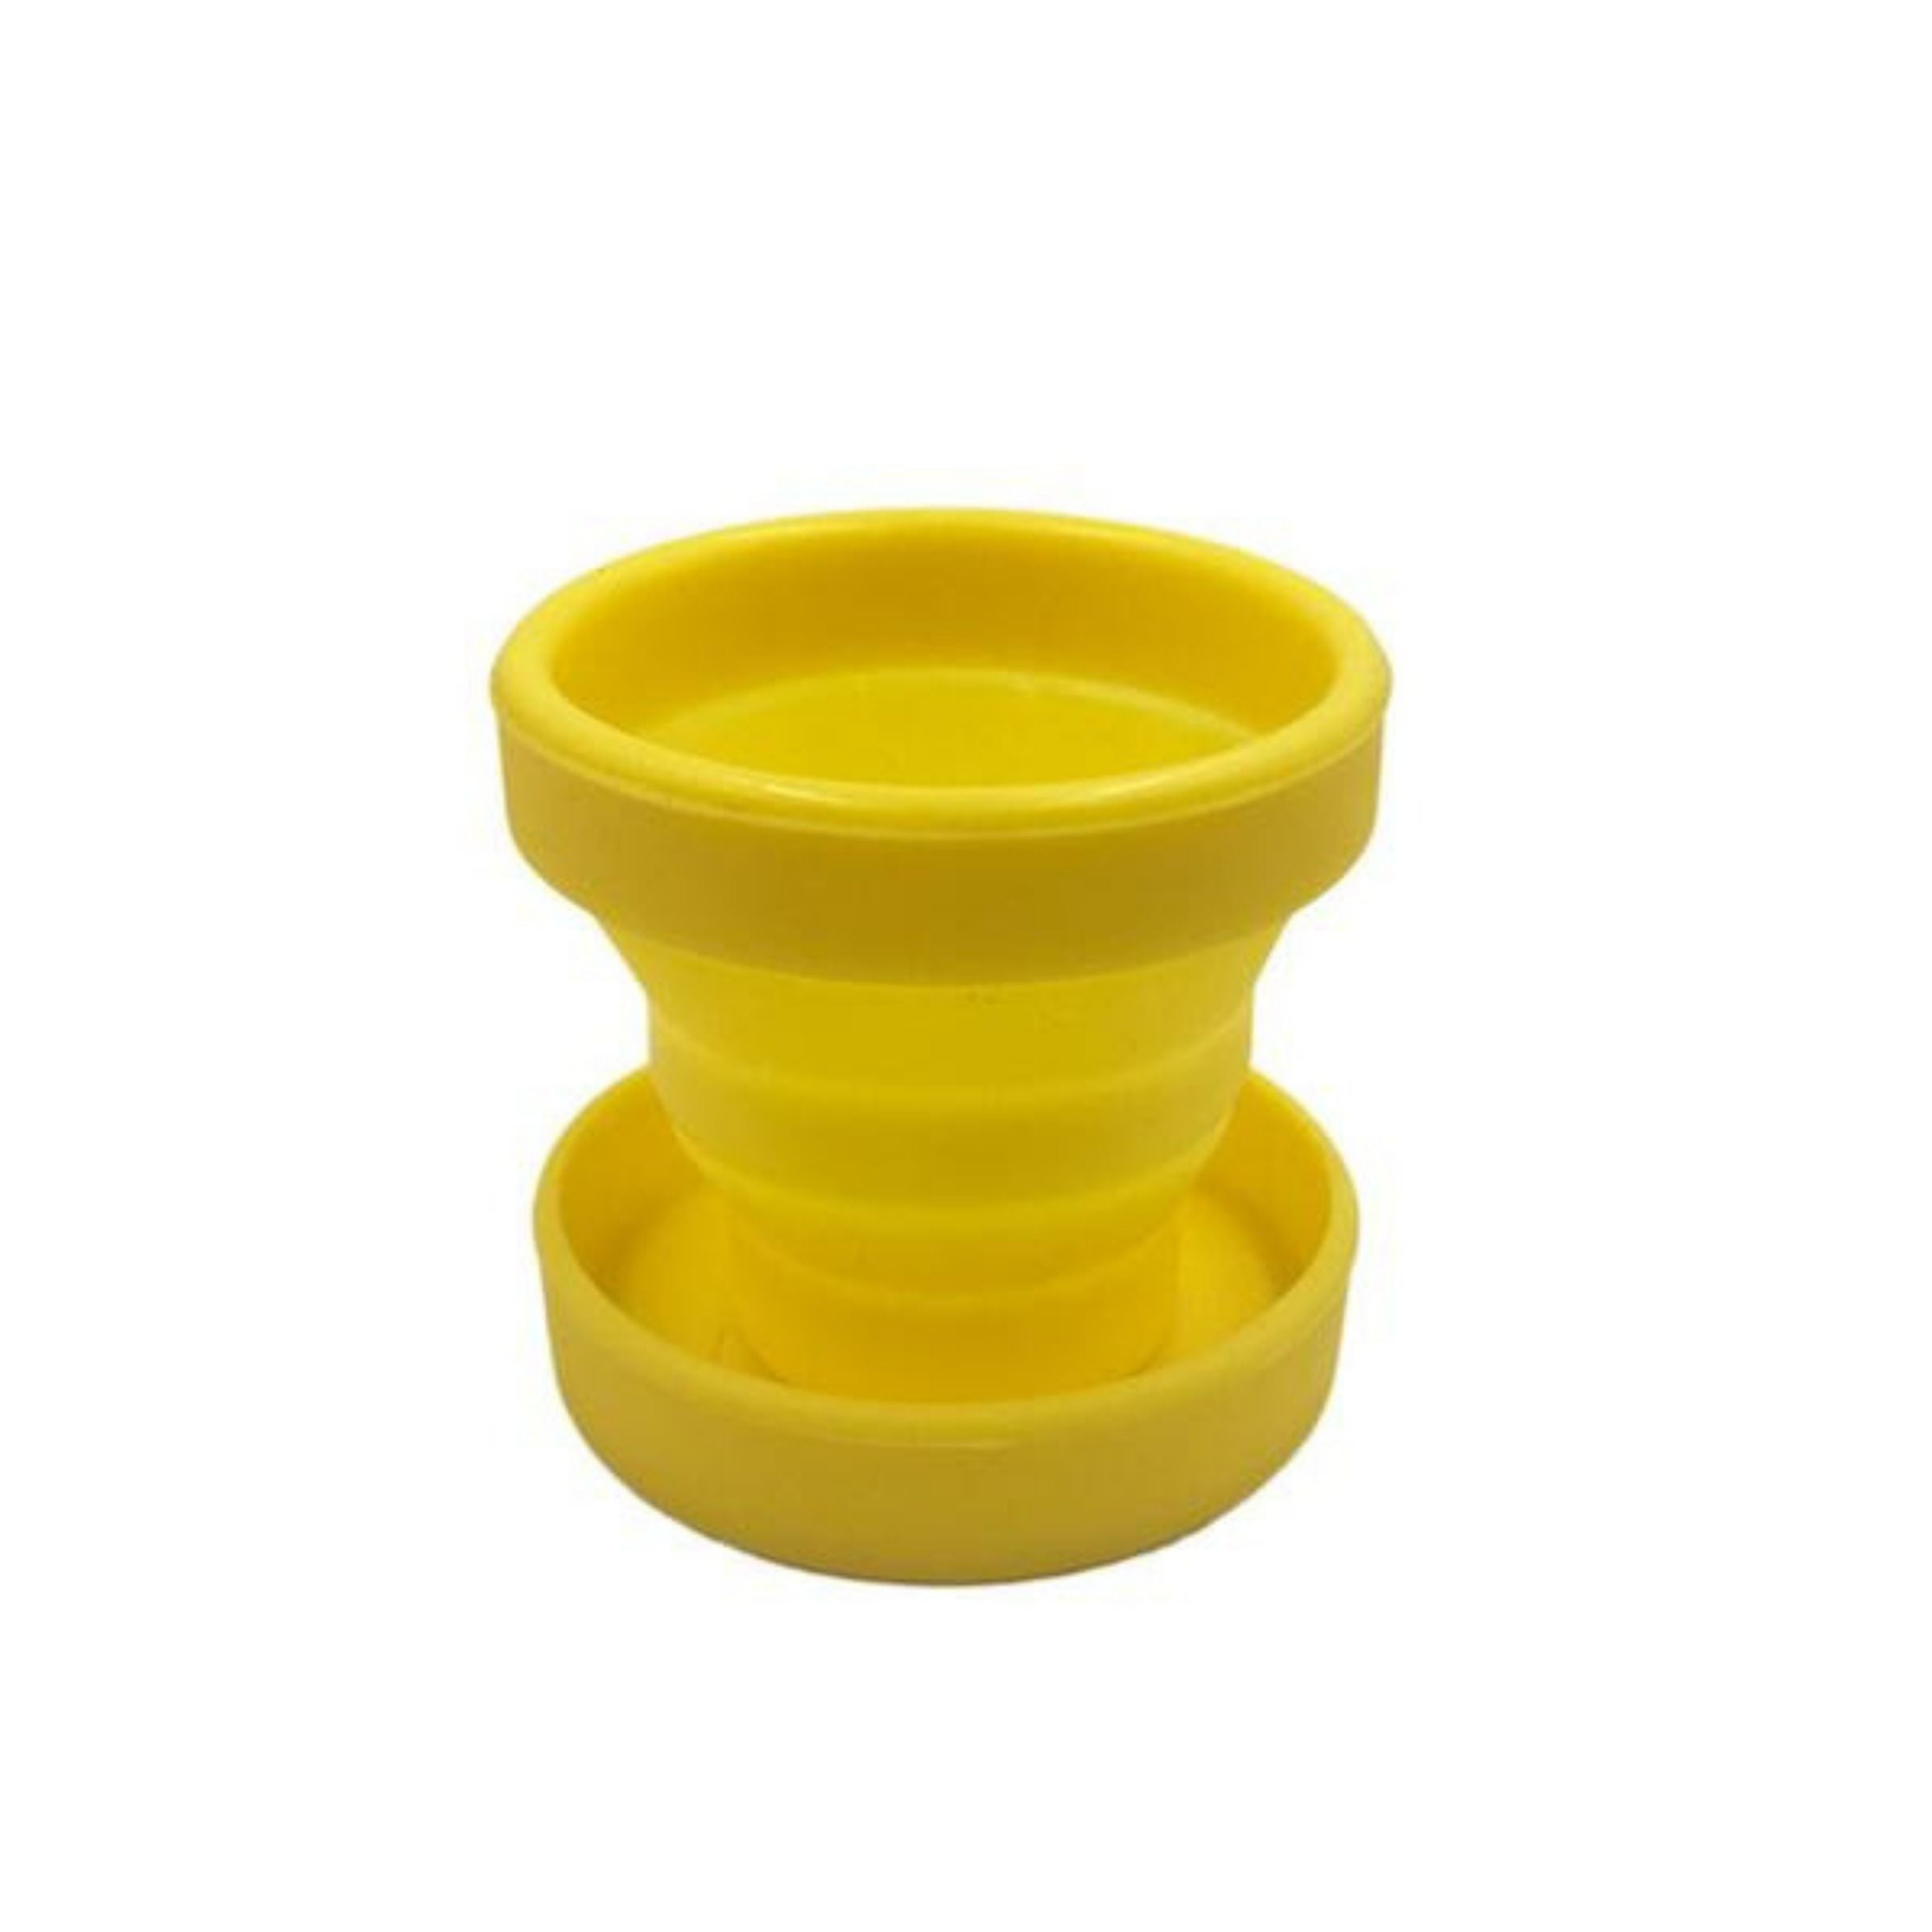 Menstrual Cups Sterilizer in yellow